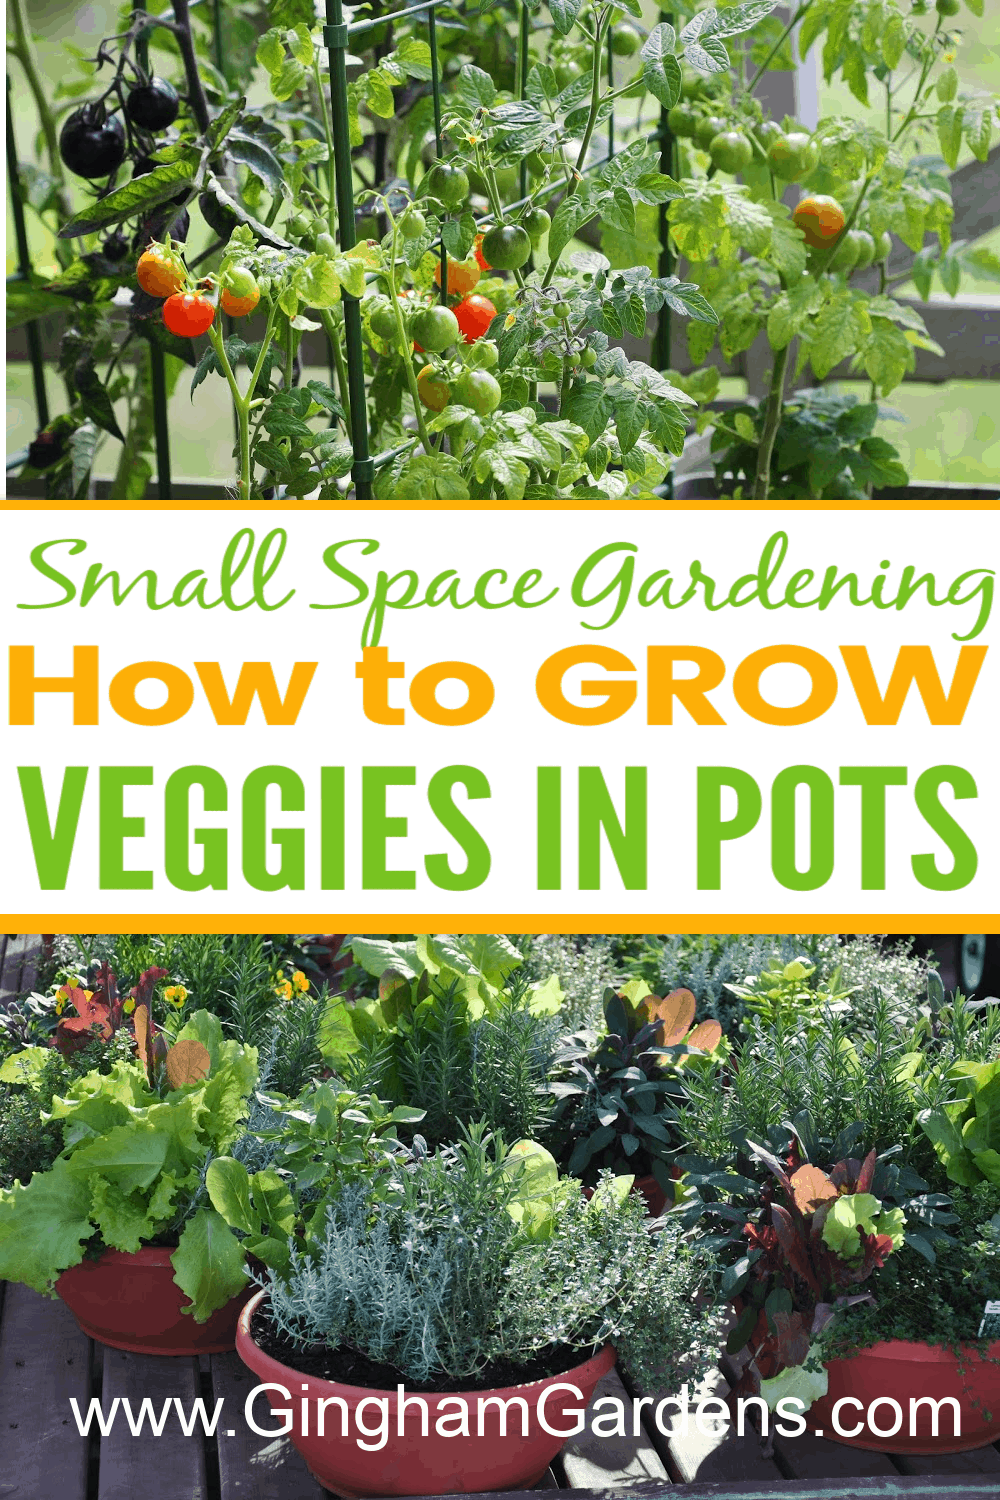 Images of Veggies growing in pots with text overlay How to Grow Veggies in Pots